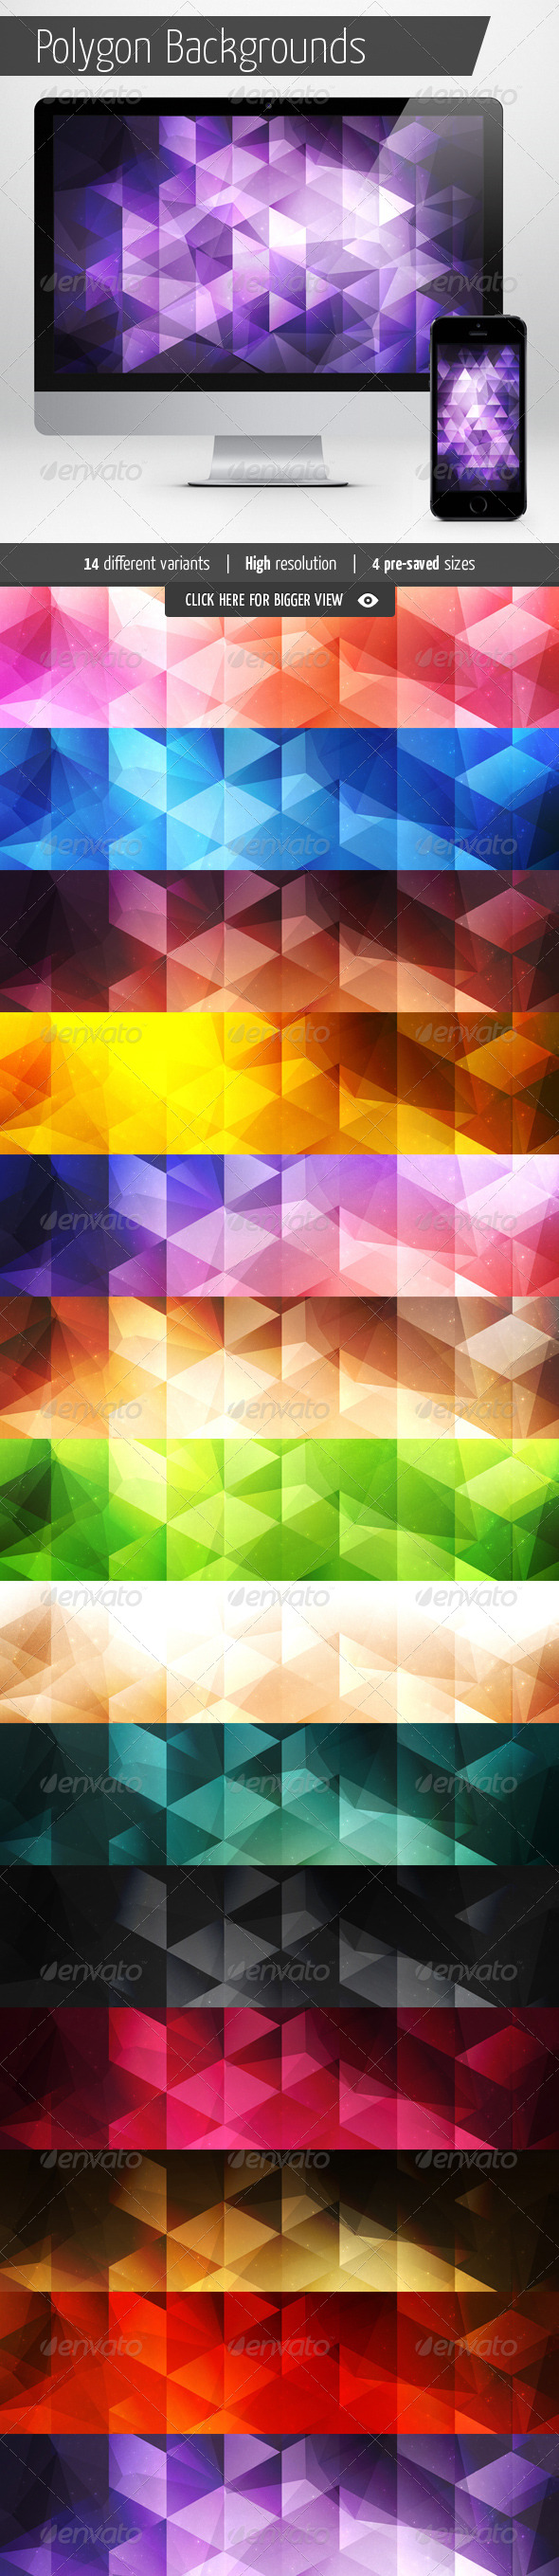 Polygon Backgrounds - Abstract Set - Abstract Backgrounds